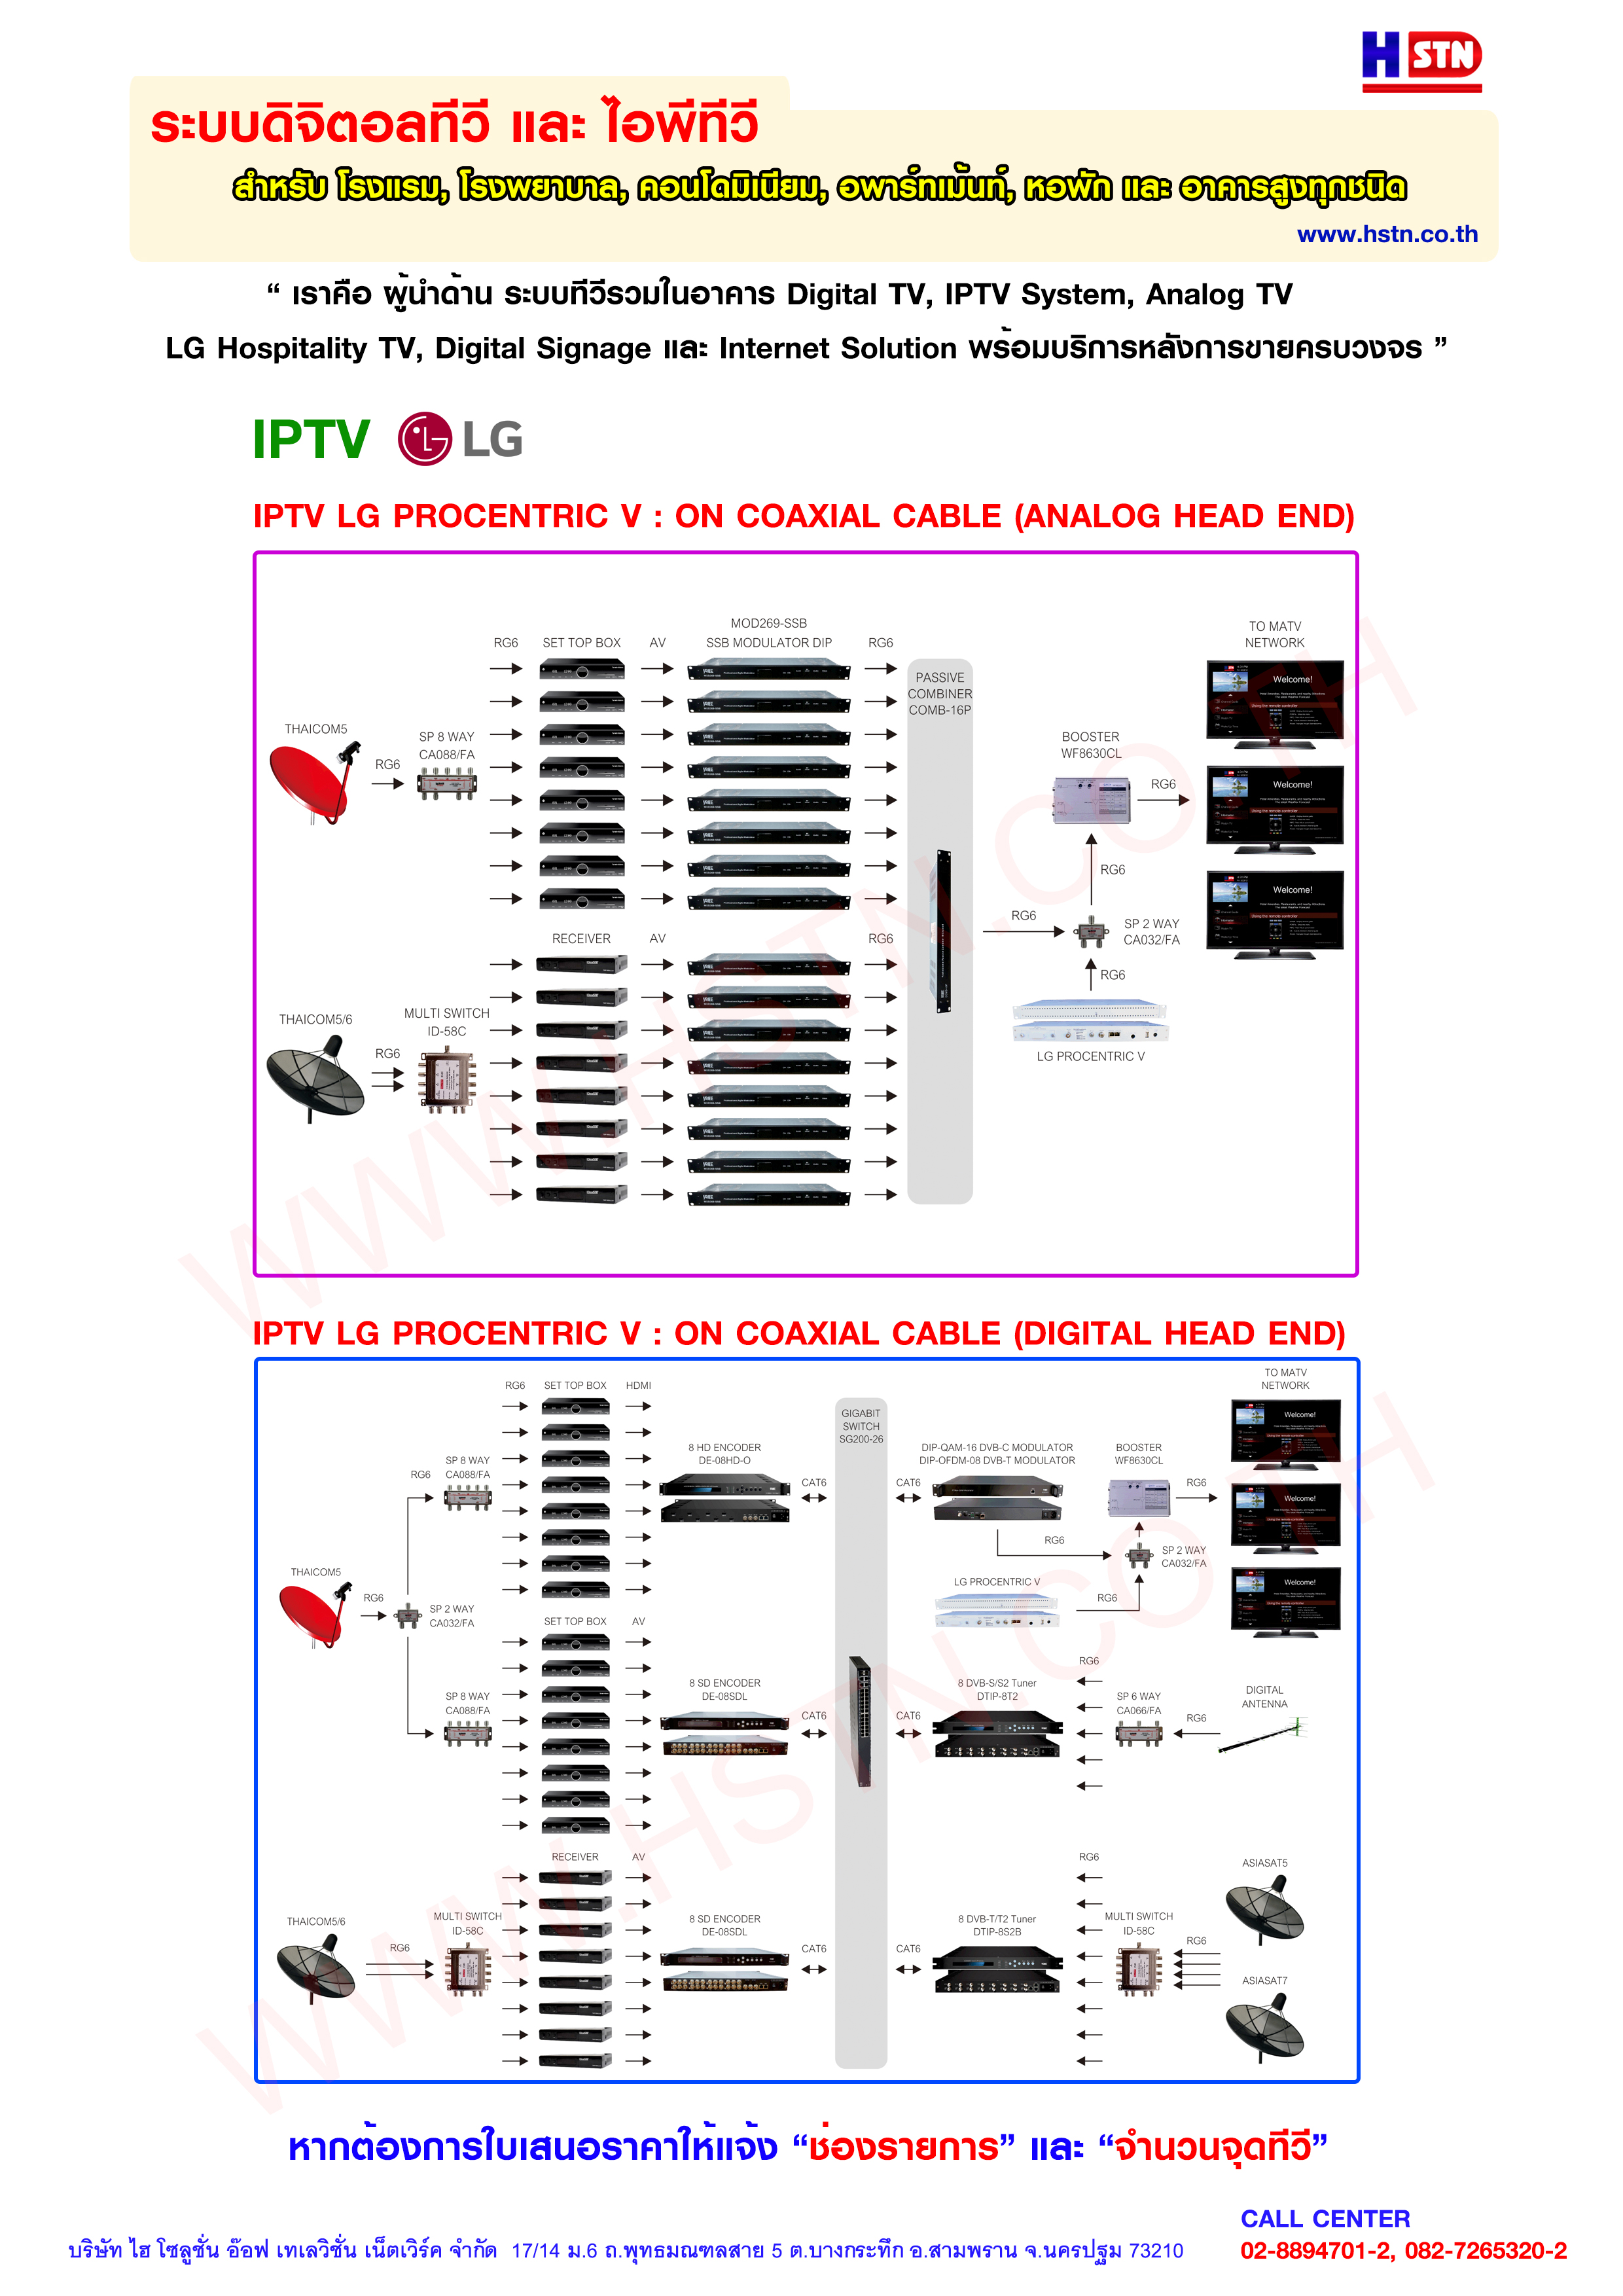 IPTV On Coaxial Cable โดย HSTN